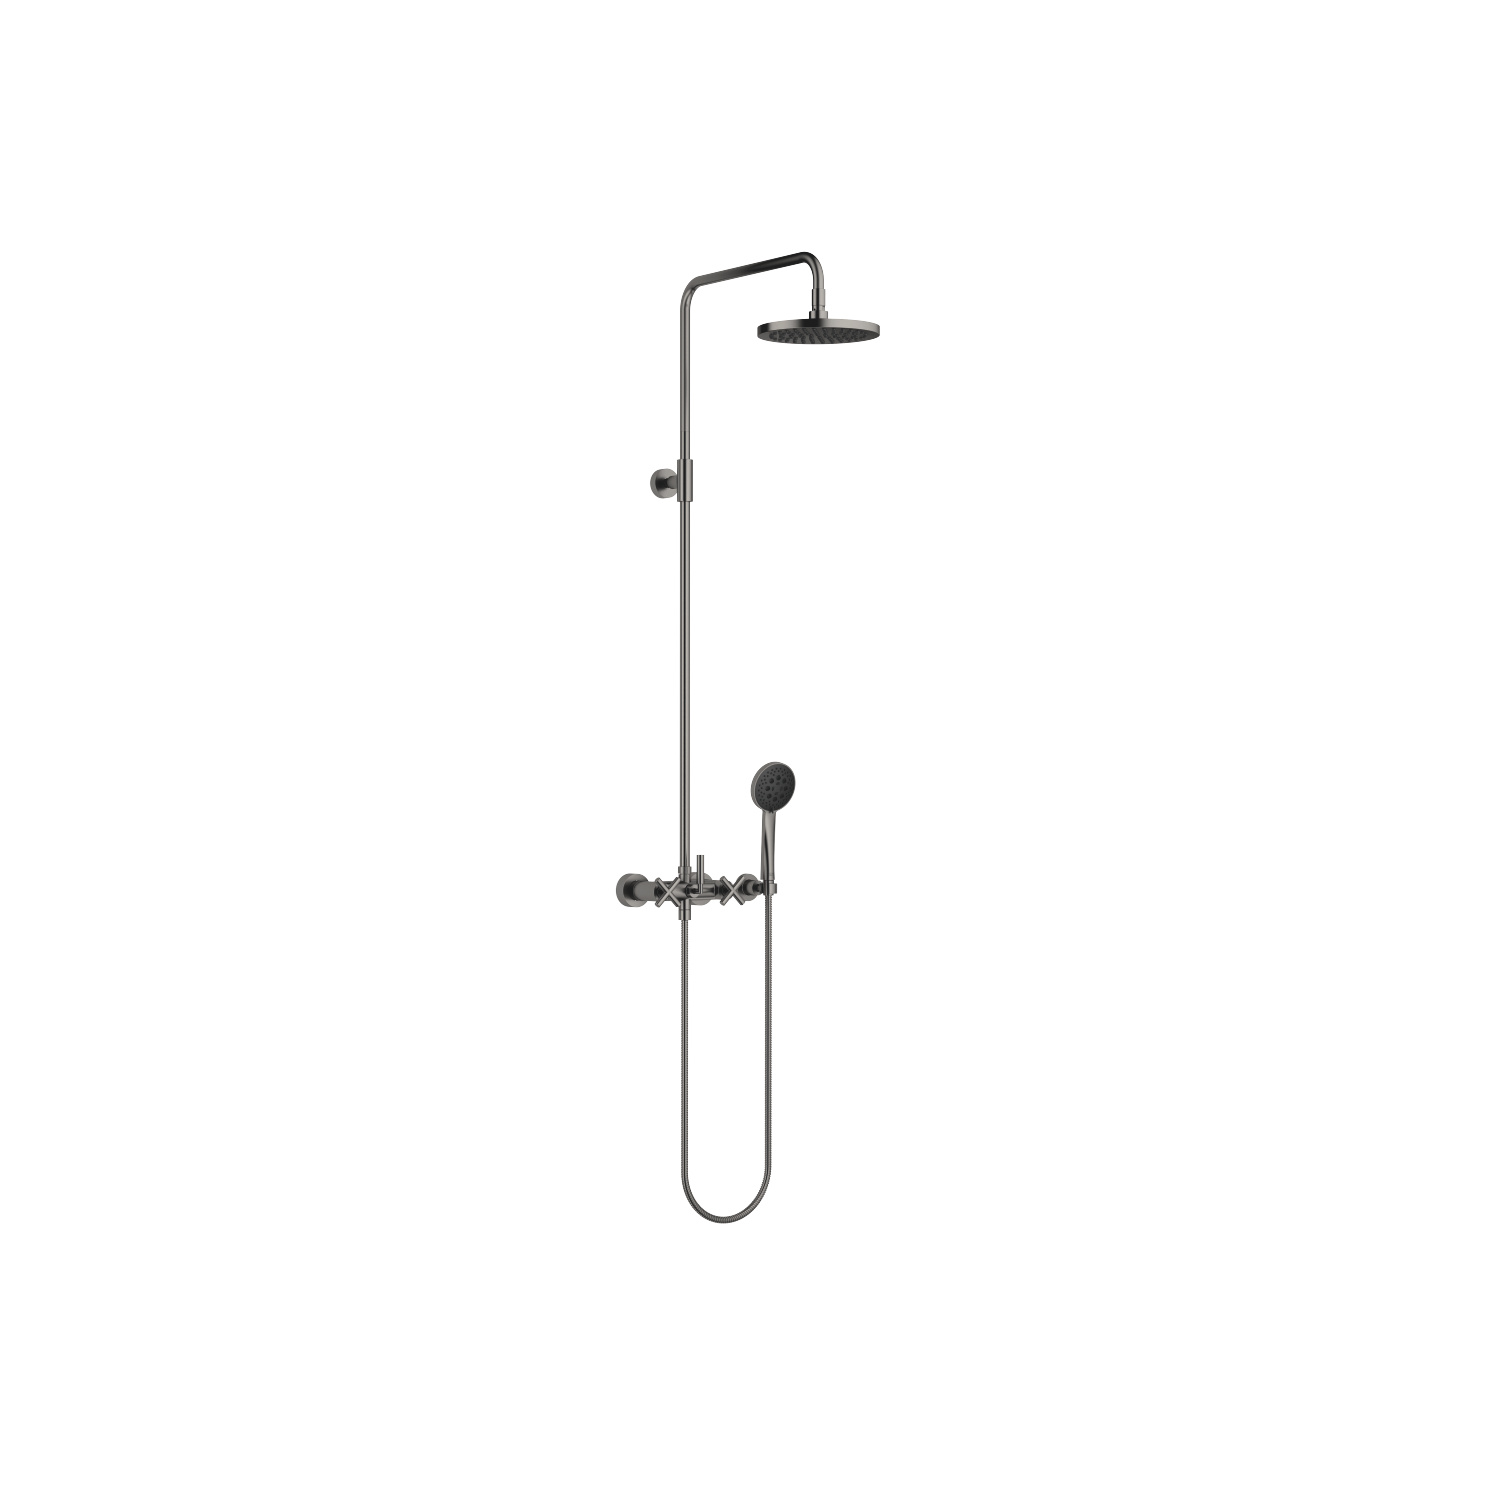 Shower mixer for wall mounting with fixed and hand shower - Dark Platinum matt - 26 631 892-99